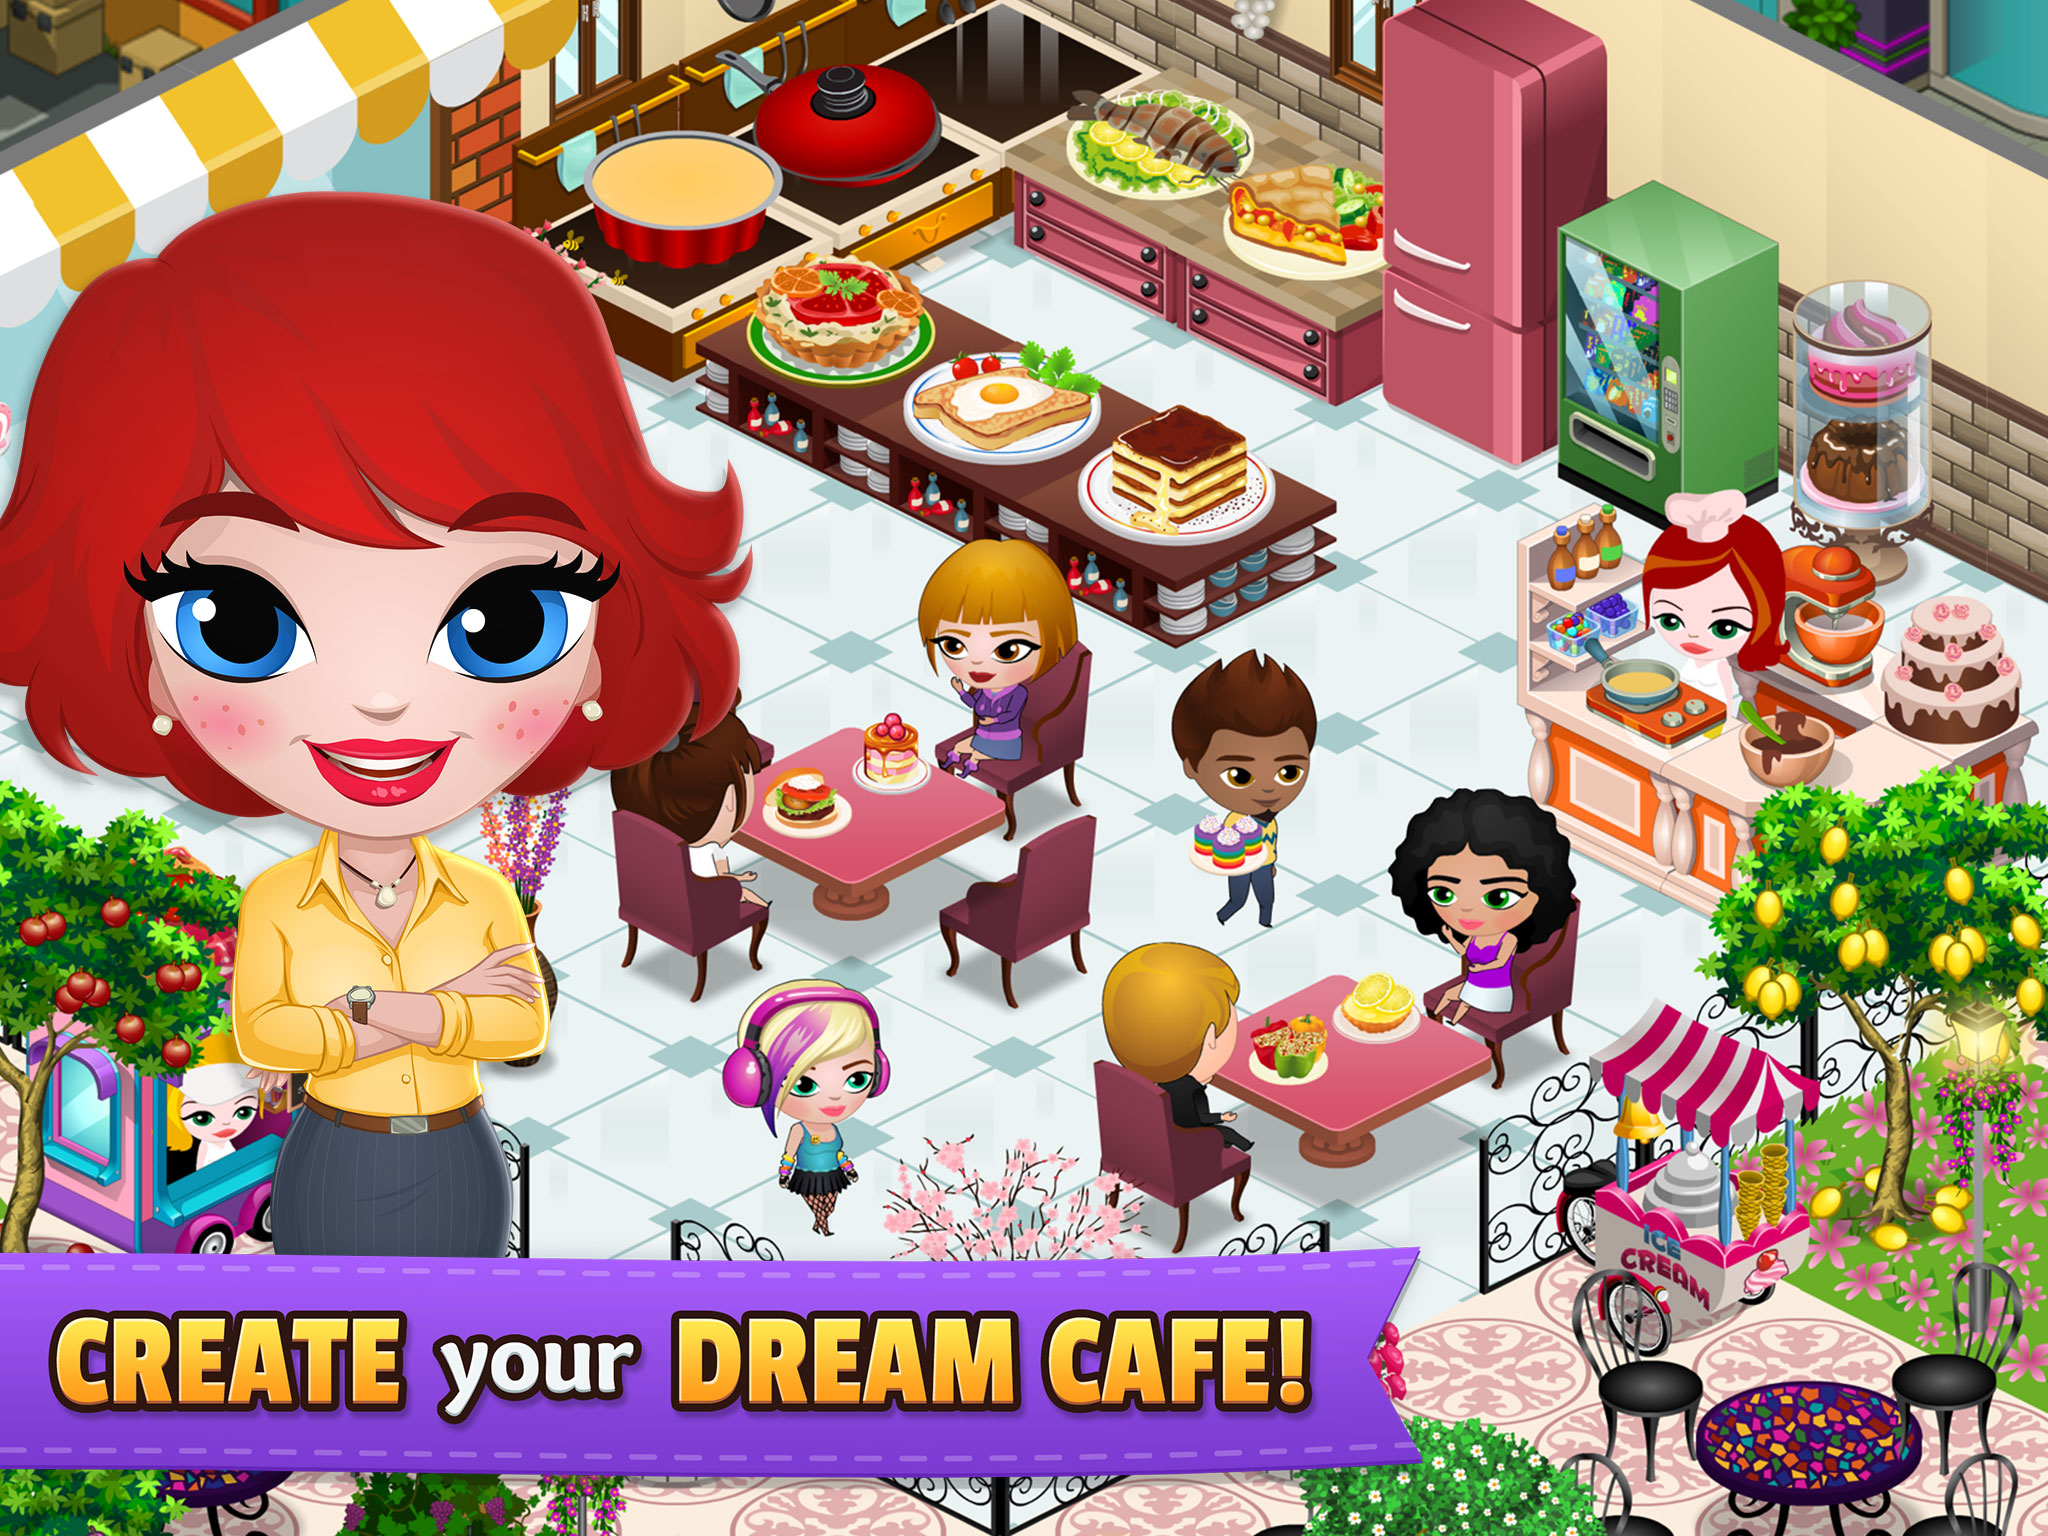 CREATE your DREAM CAFE